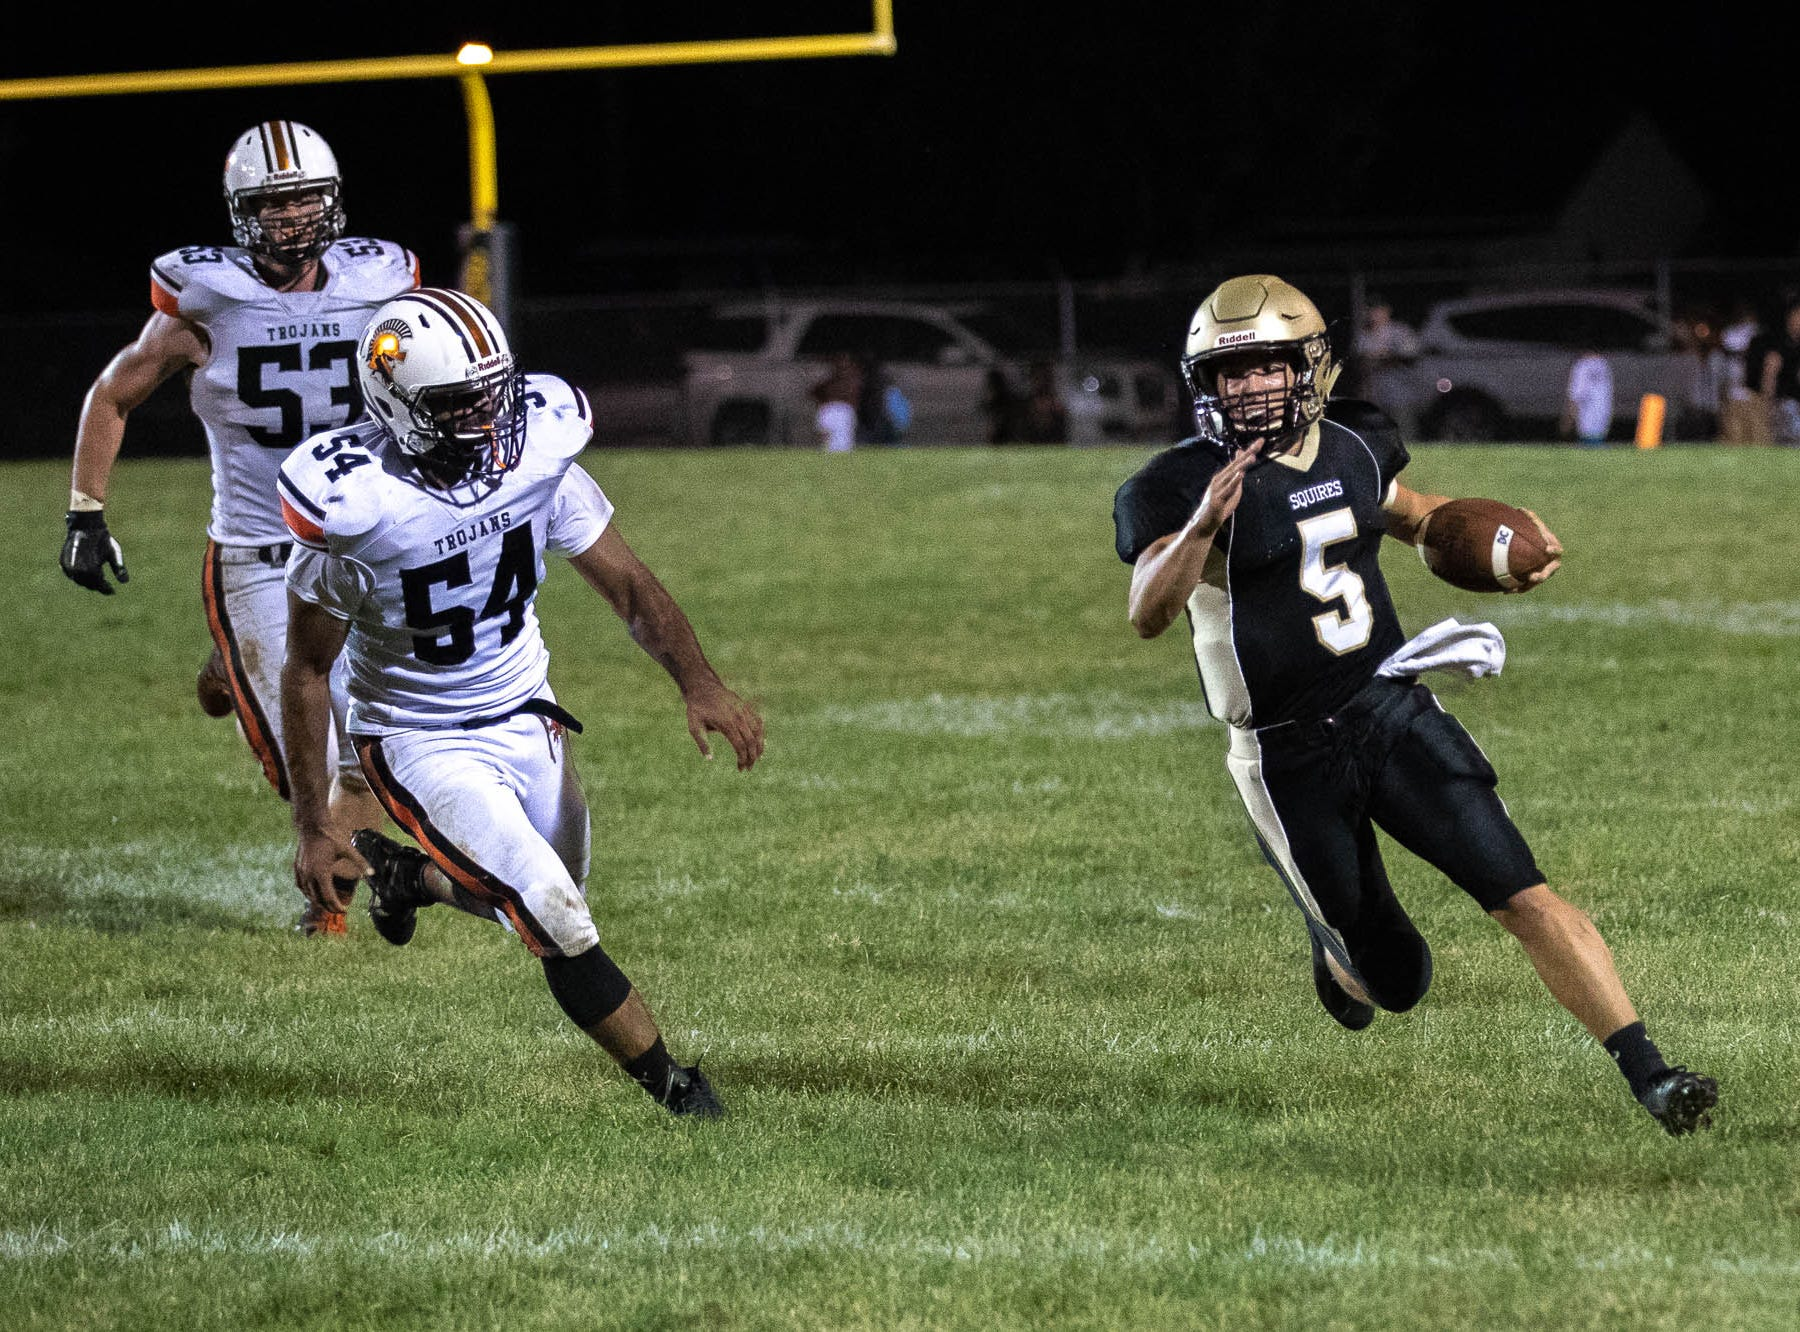 Delone's Kevin Mowrey (5) runs the ball during the second half of a football game between Delone Catholic and York Suburban, Friday, Aug. 31, 2018, at Delone Catholic High School in McSherrystown. Delone beat York Suburban 62-0.